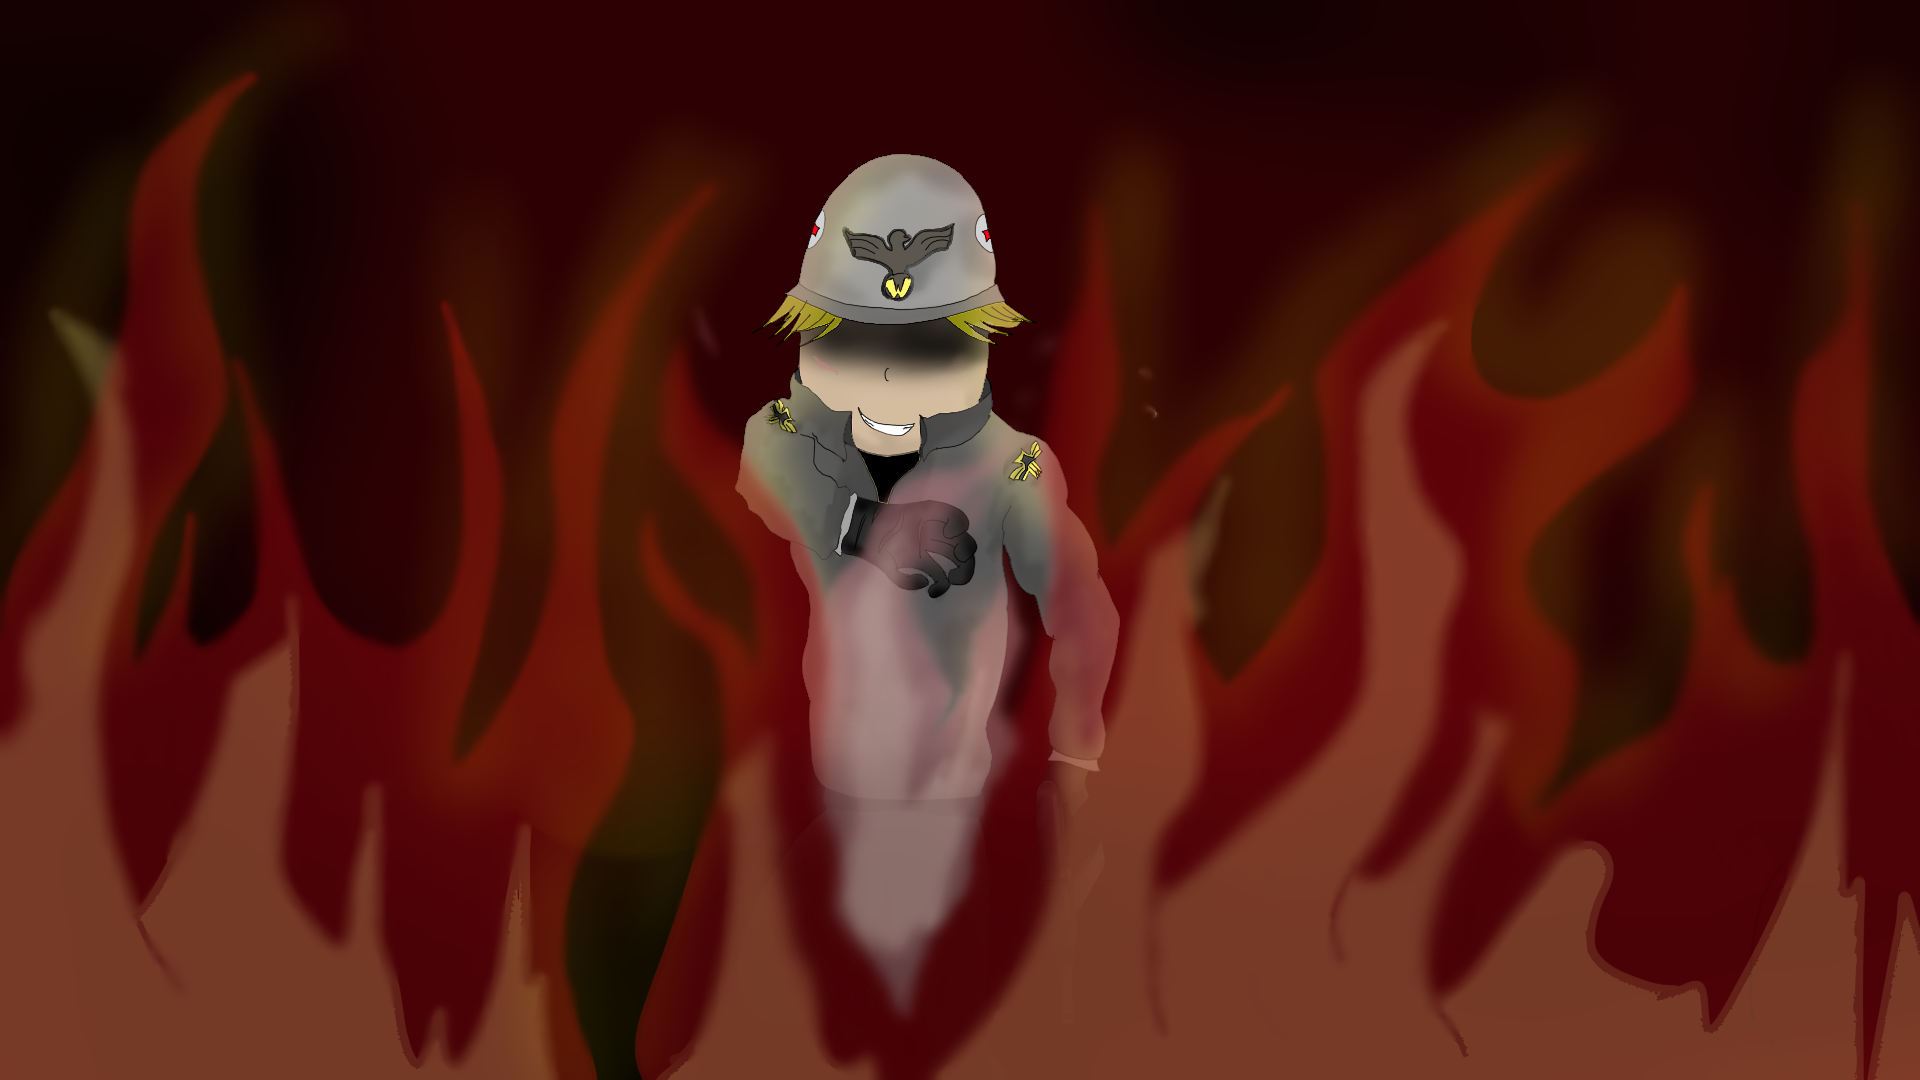 From the fire